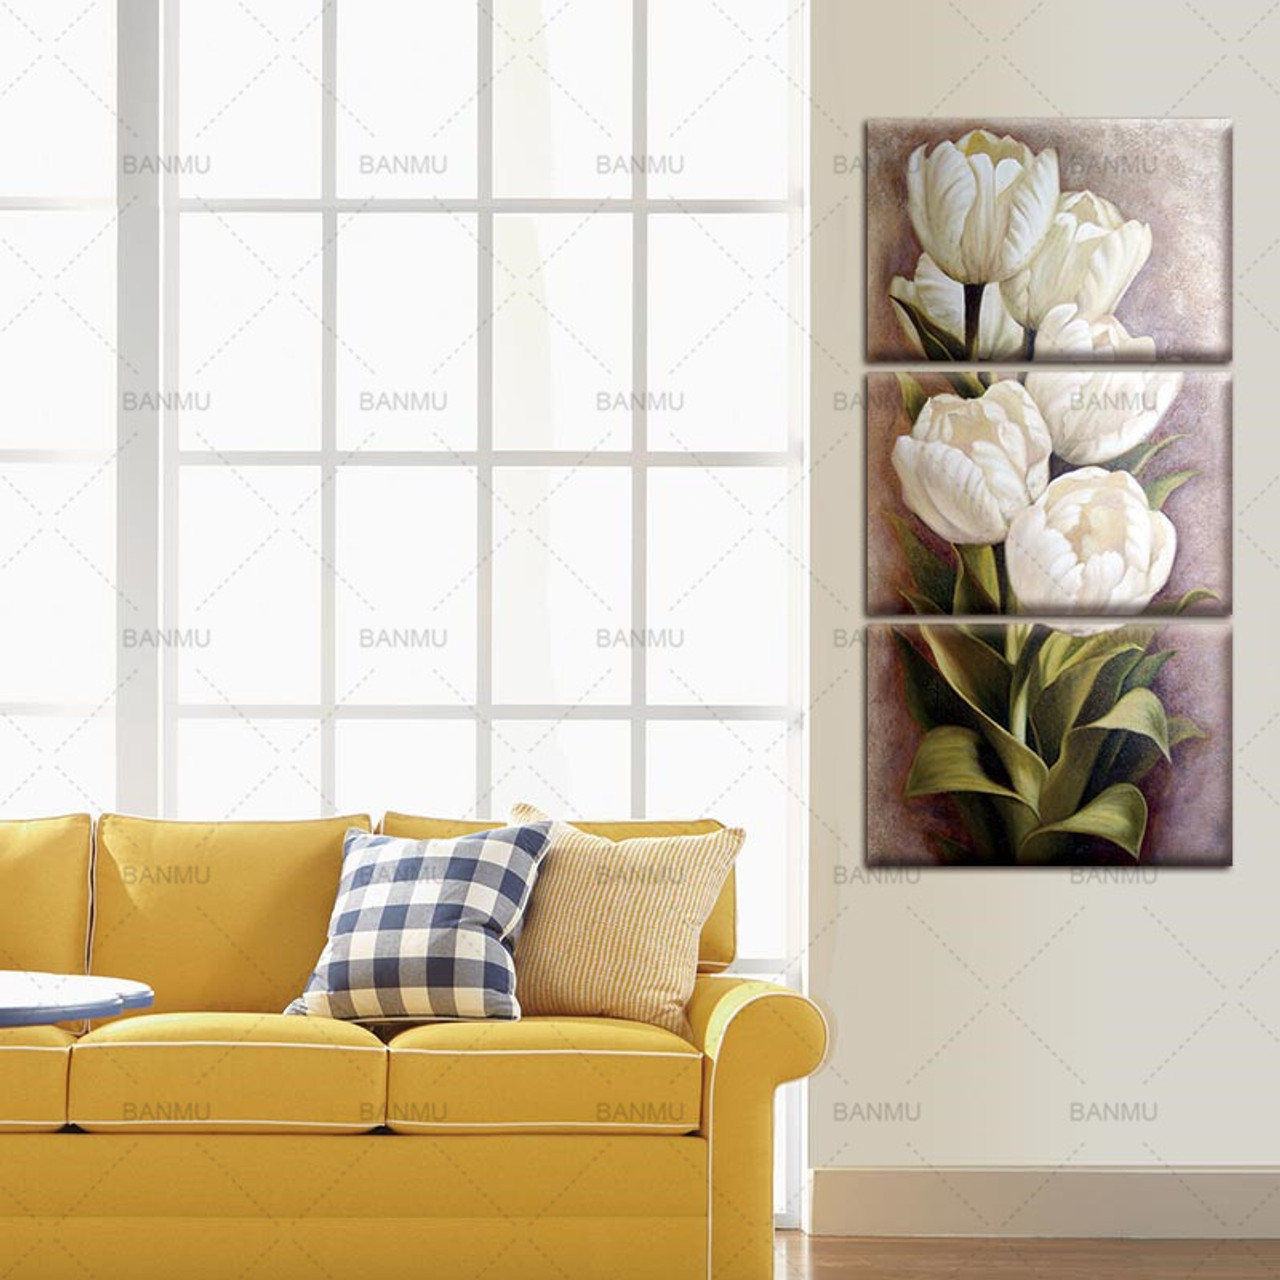 Tulips 3 Panels Wall Art Canvas Paintings Wall Decorations for Living Room Home Office Artwork Giclee323611524134066jpgcu003d2 tiny bedroom nook u0027a casarella tiny